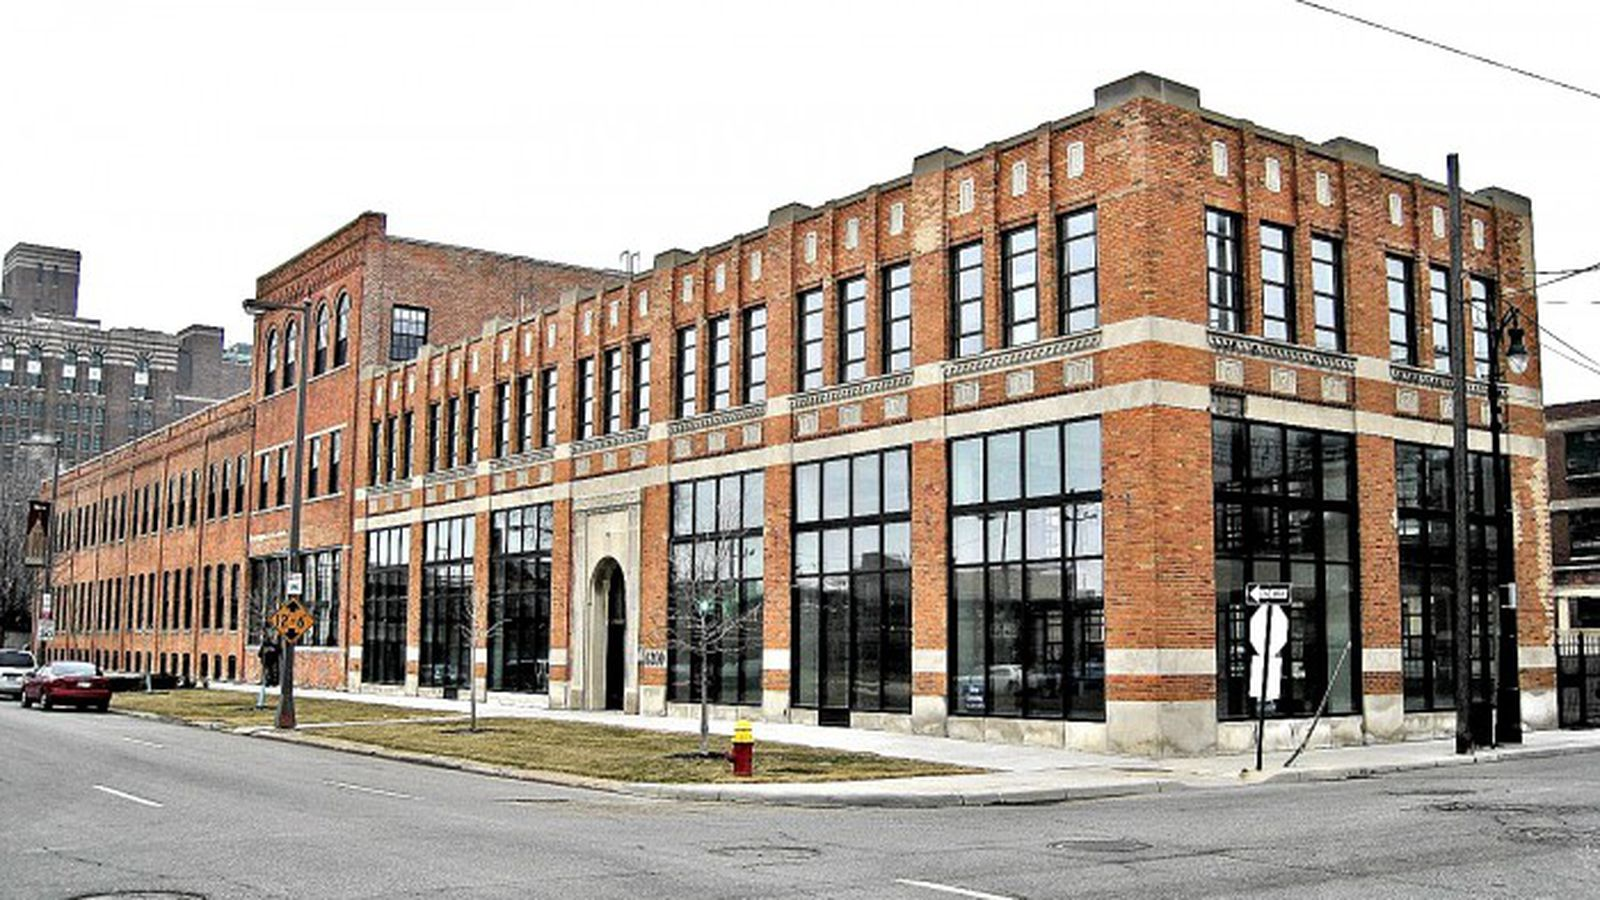 2 Bedroom Tech Town Loft A Hot Ticket For Mid August